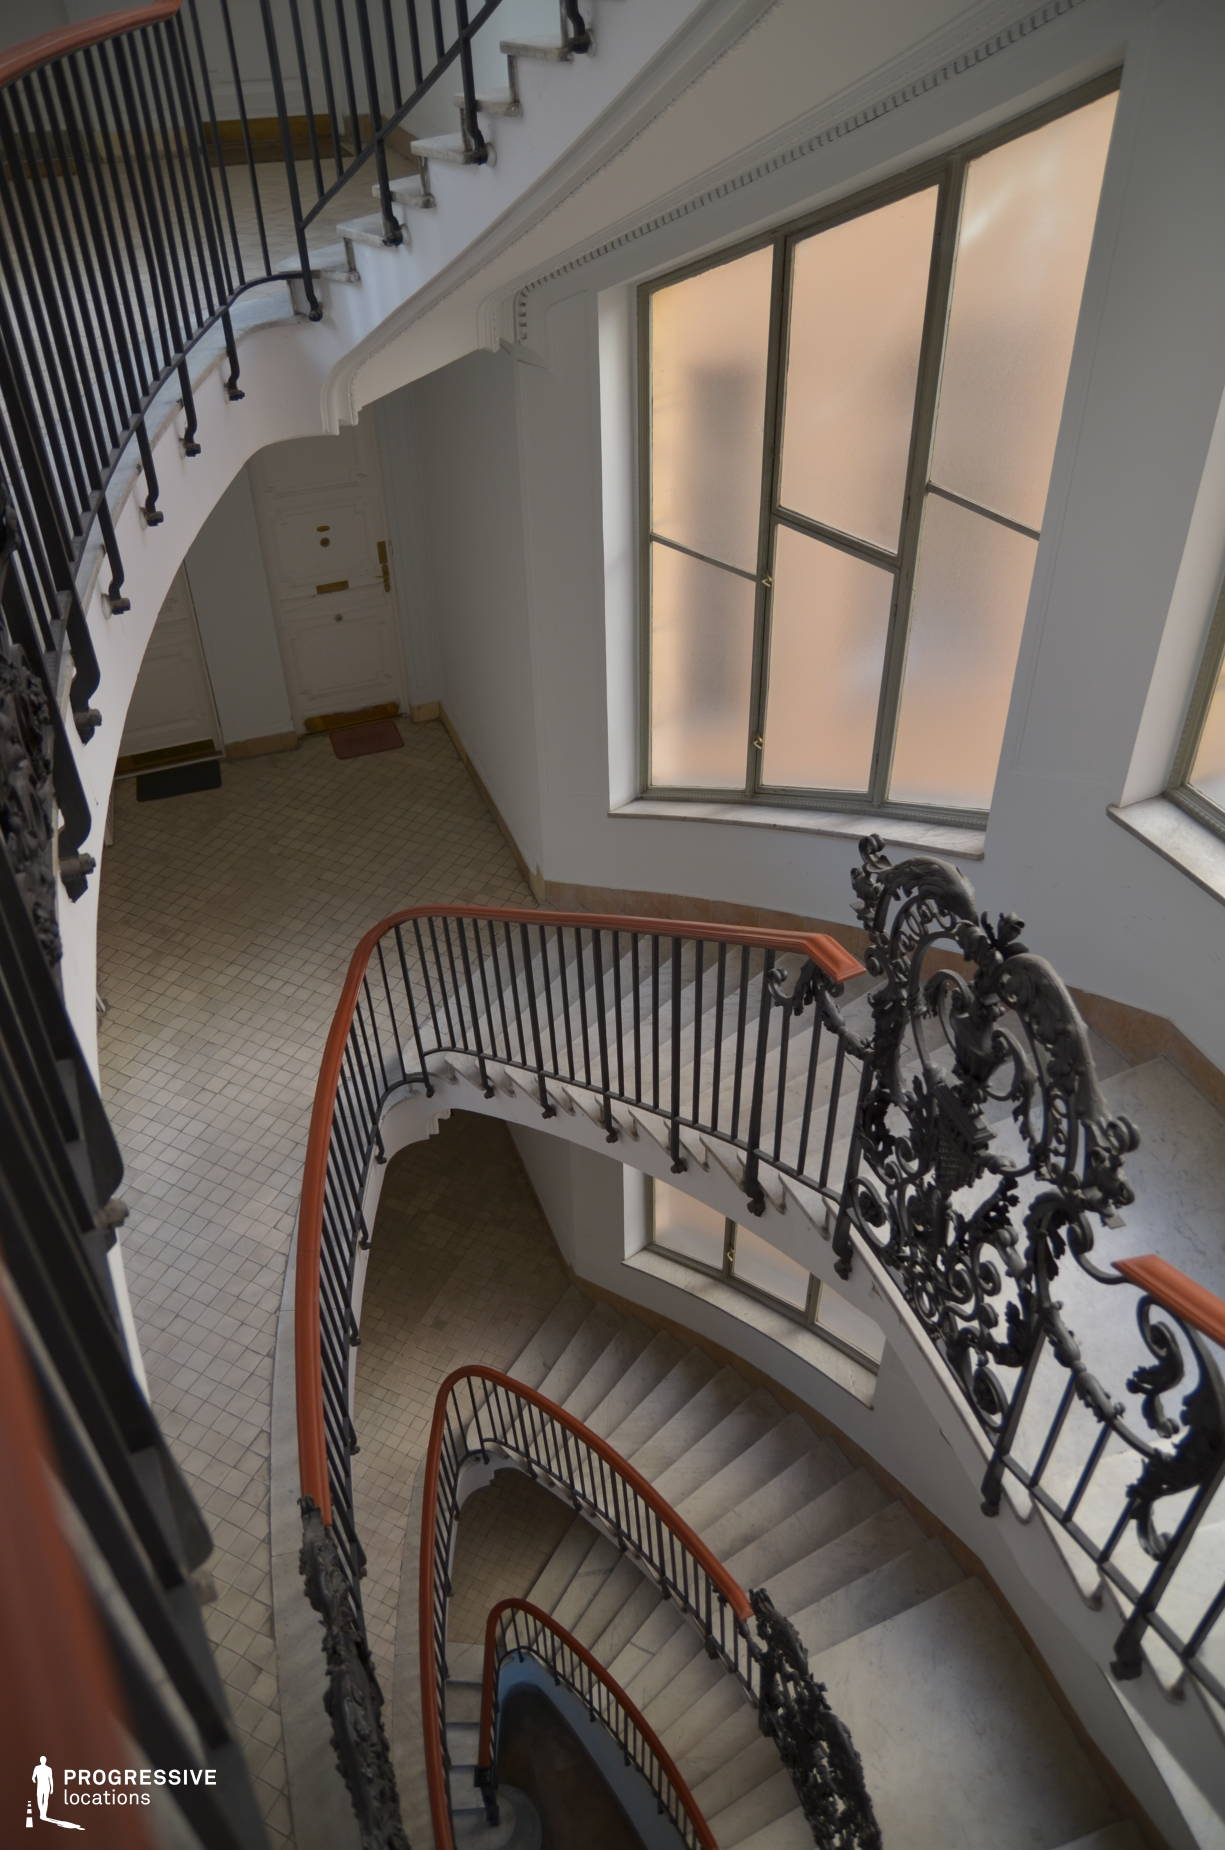 Locations in Budapest: Oval Staircase, Kossuth Square